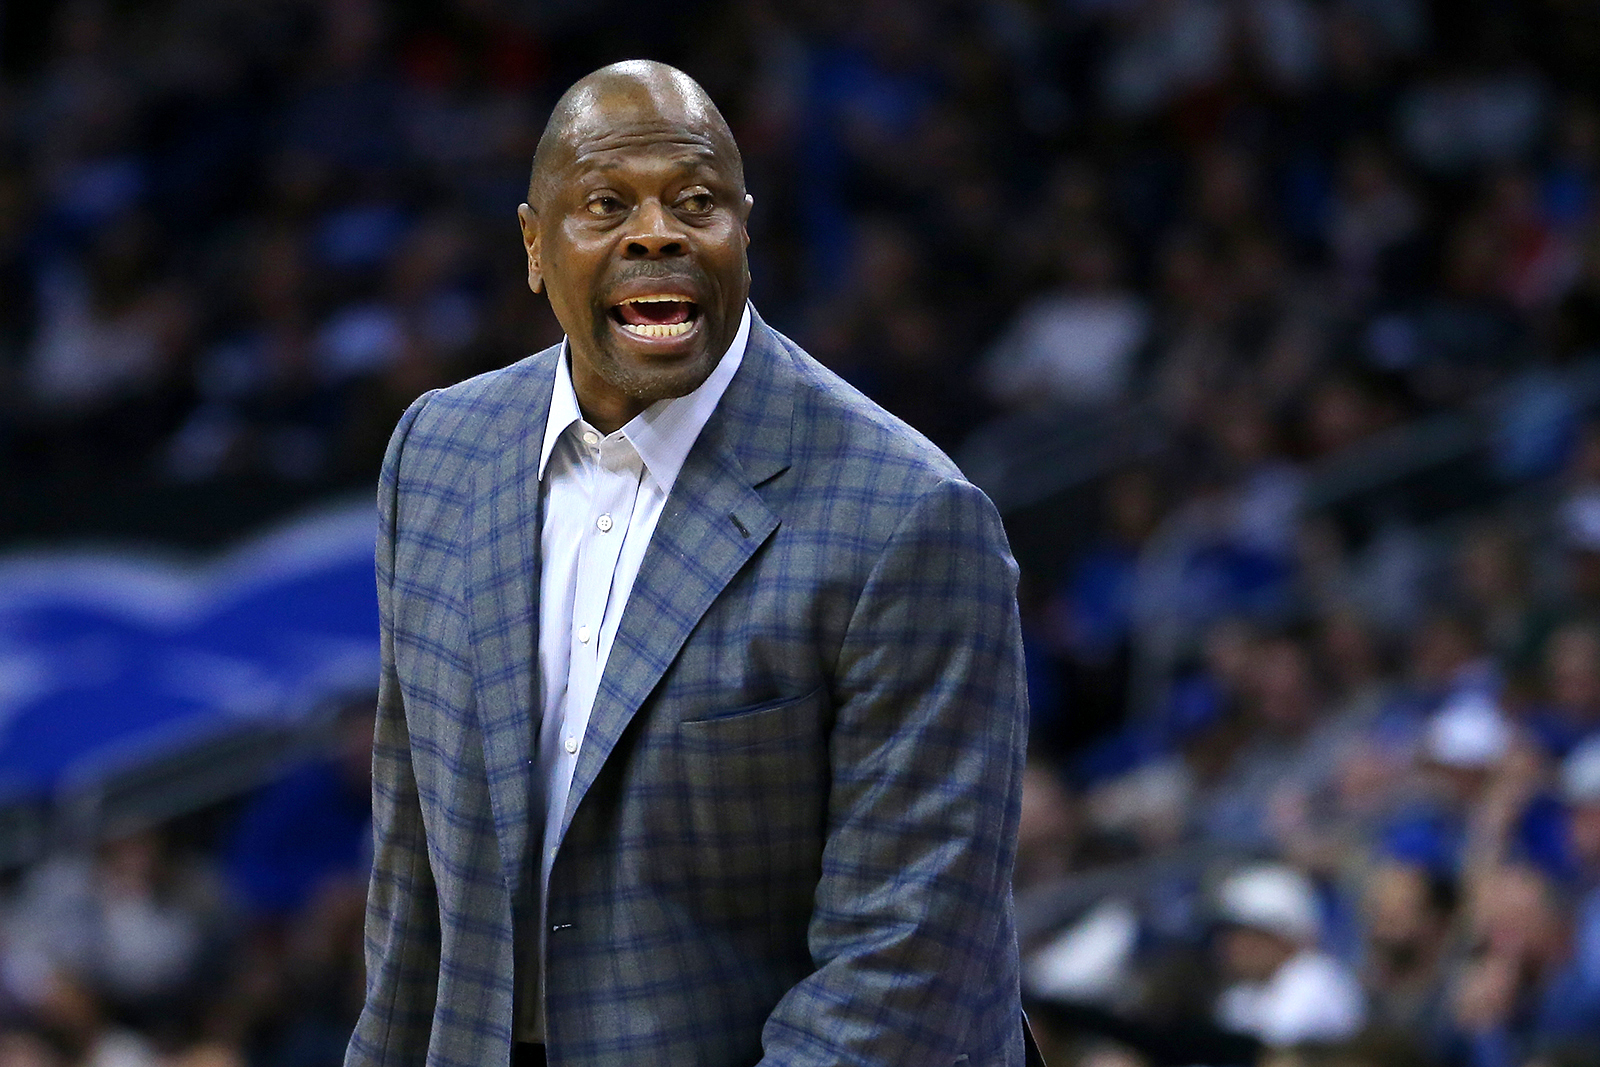 Head coach Patrick Ewing of the Georgetown Hoyas in action against the Seton Hall Pirates during a college basketball game at Prudential Center in Newark, New Jersey, on January 3.